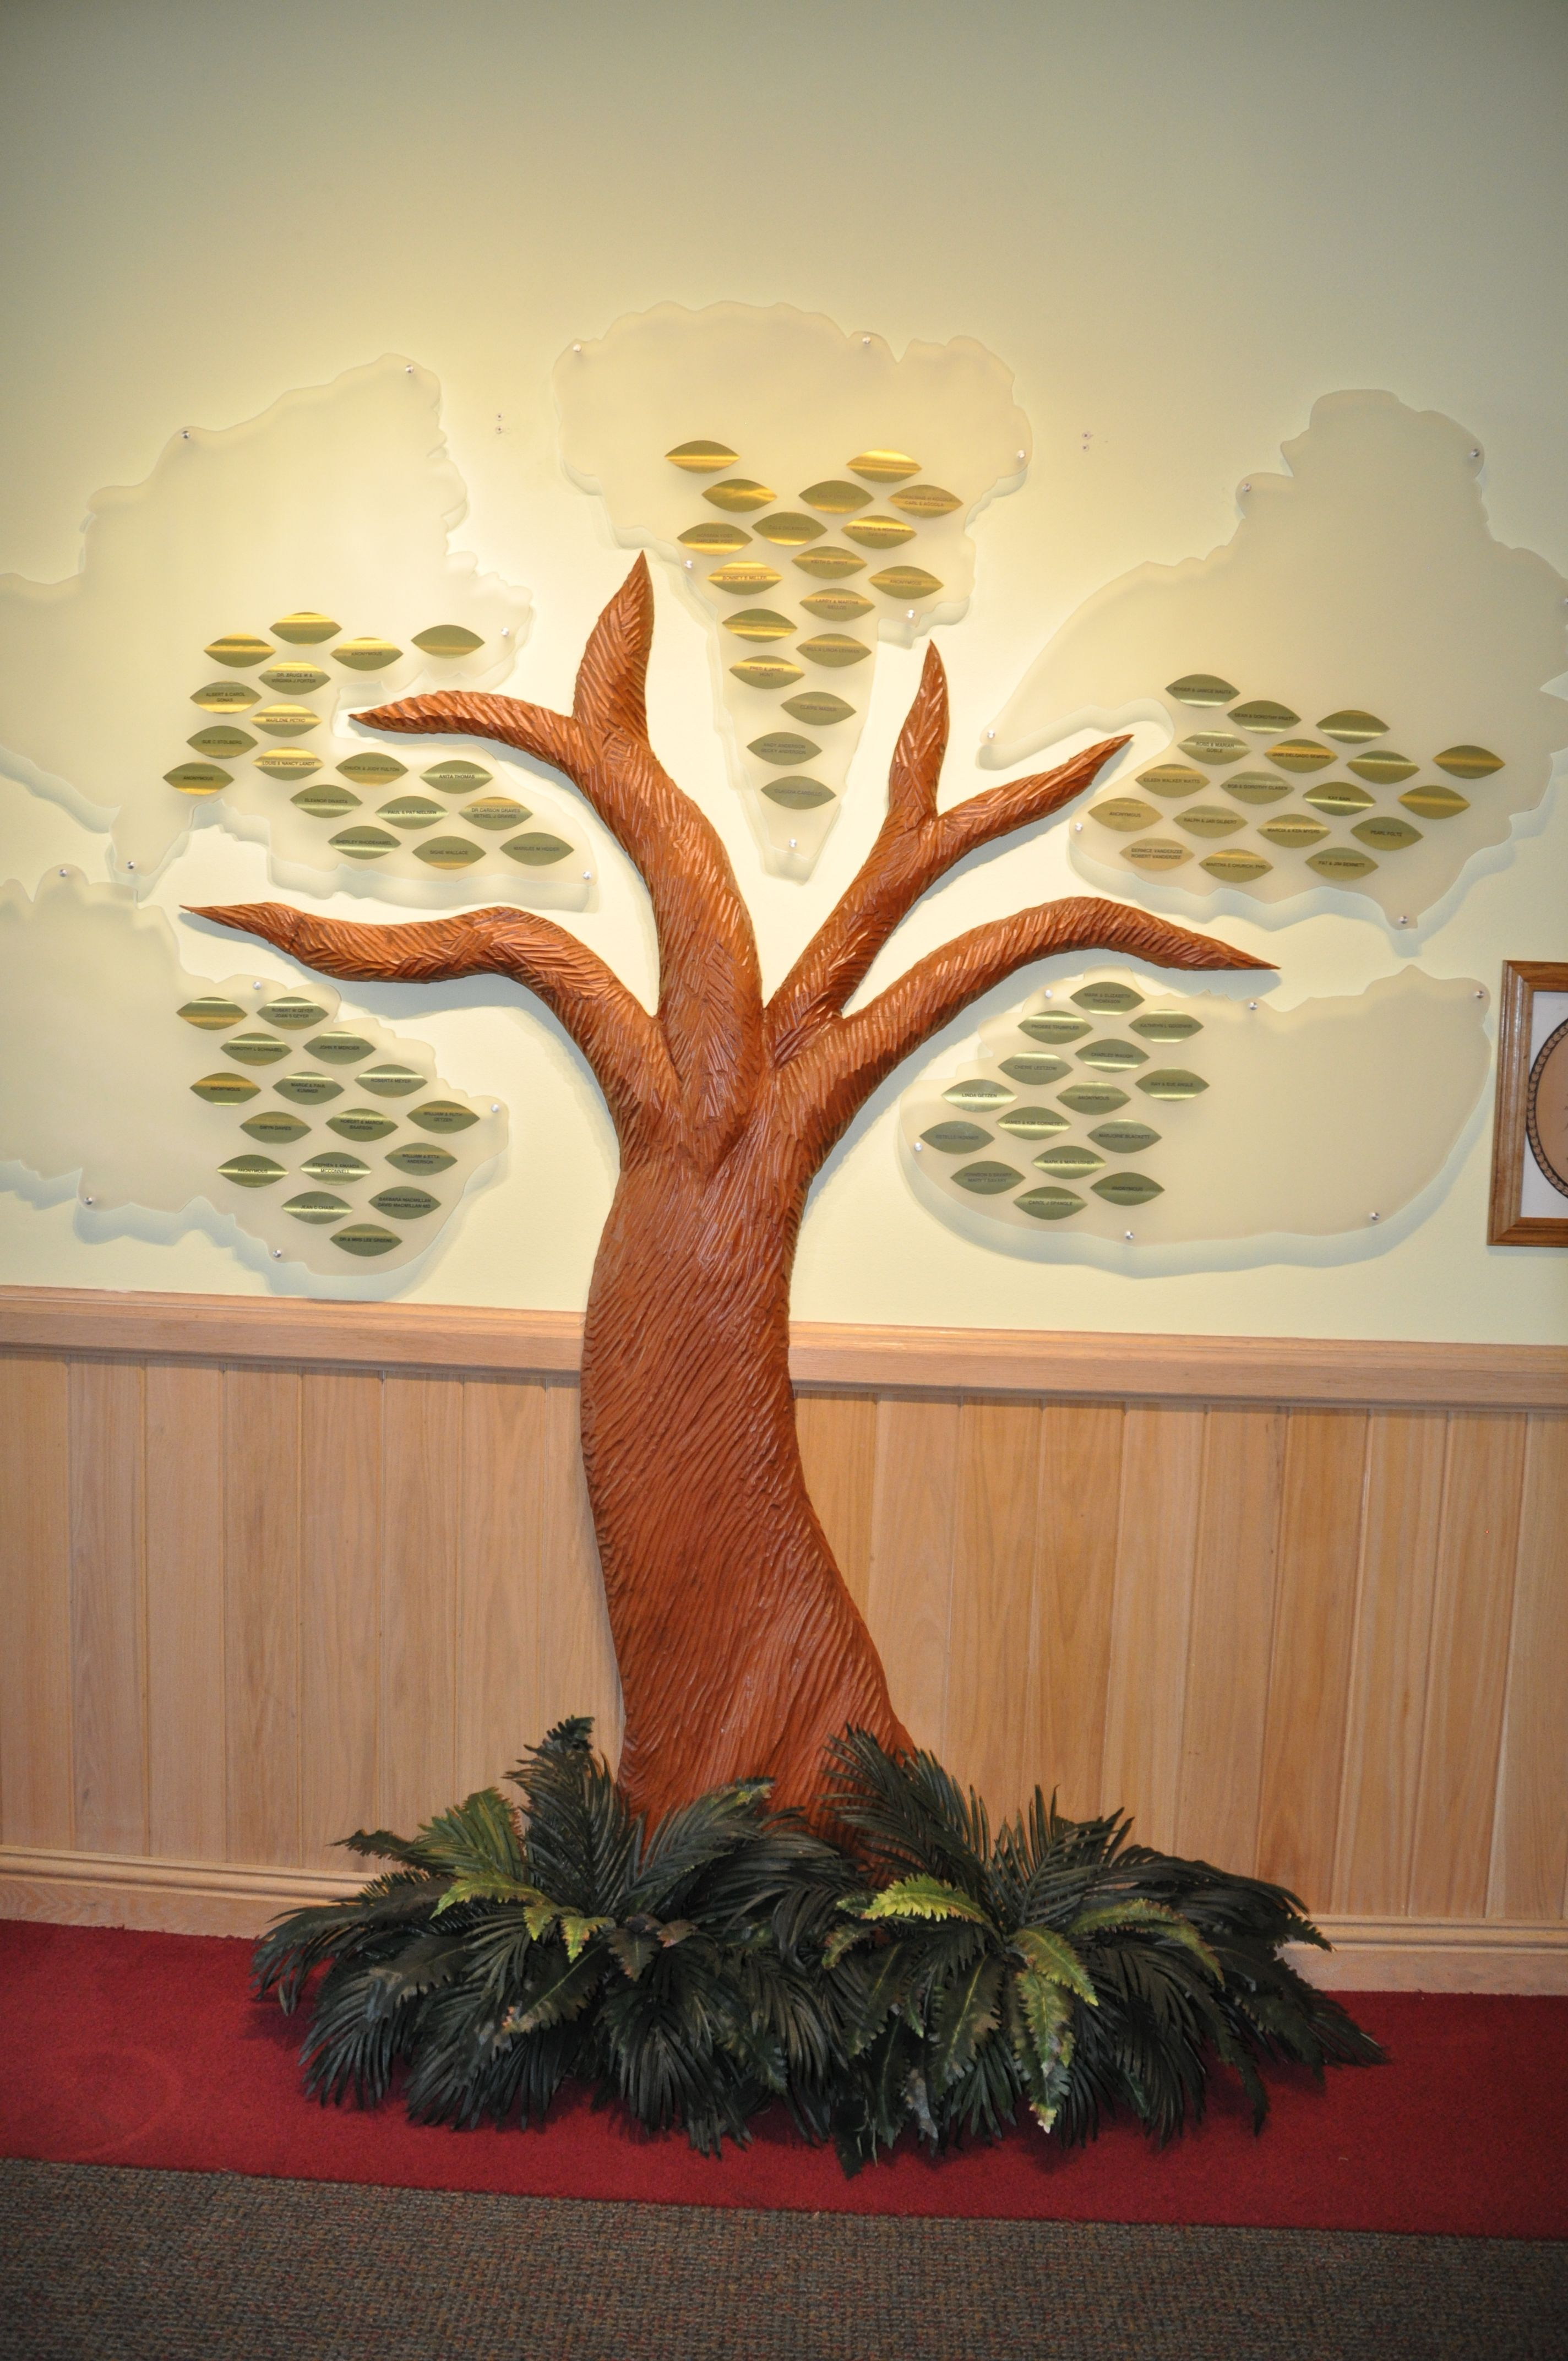 donor #donorrecognition #donorart #donordisplay #display #corian ...